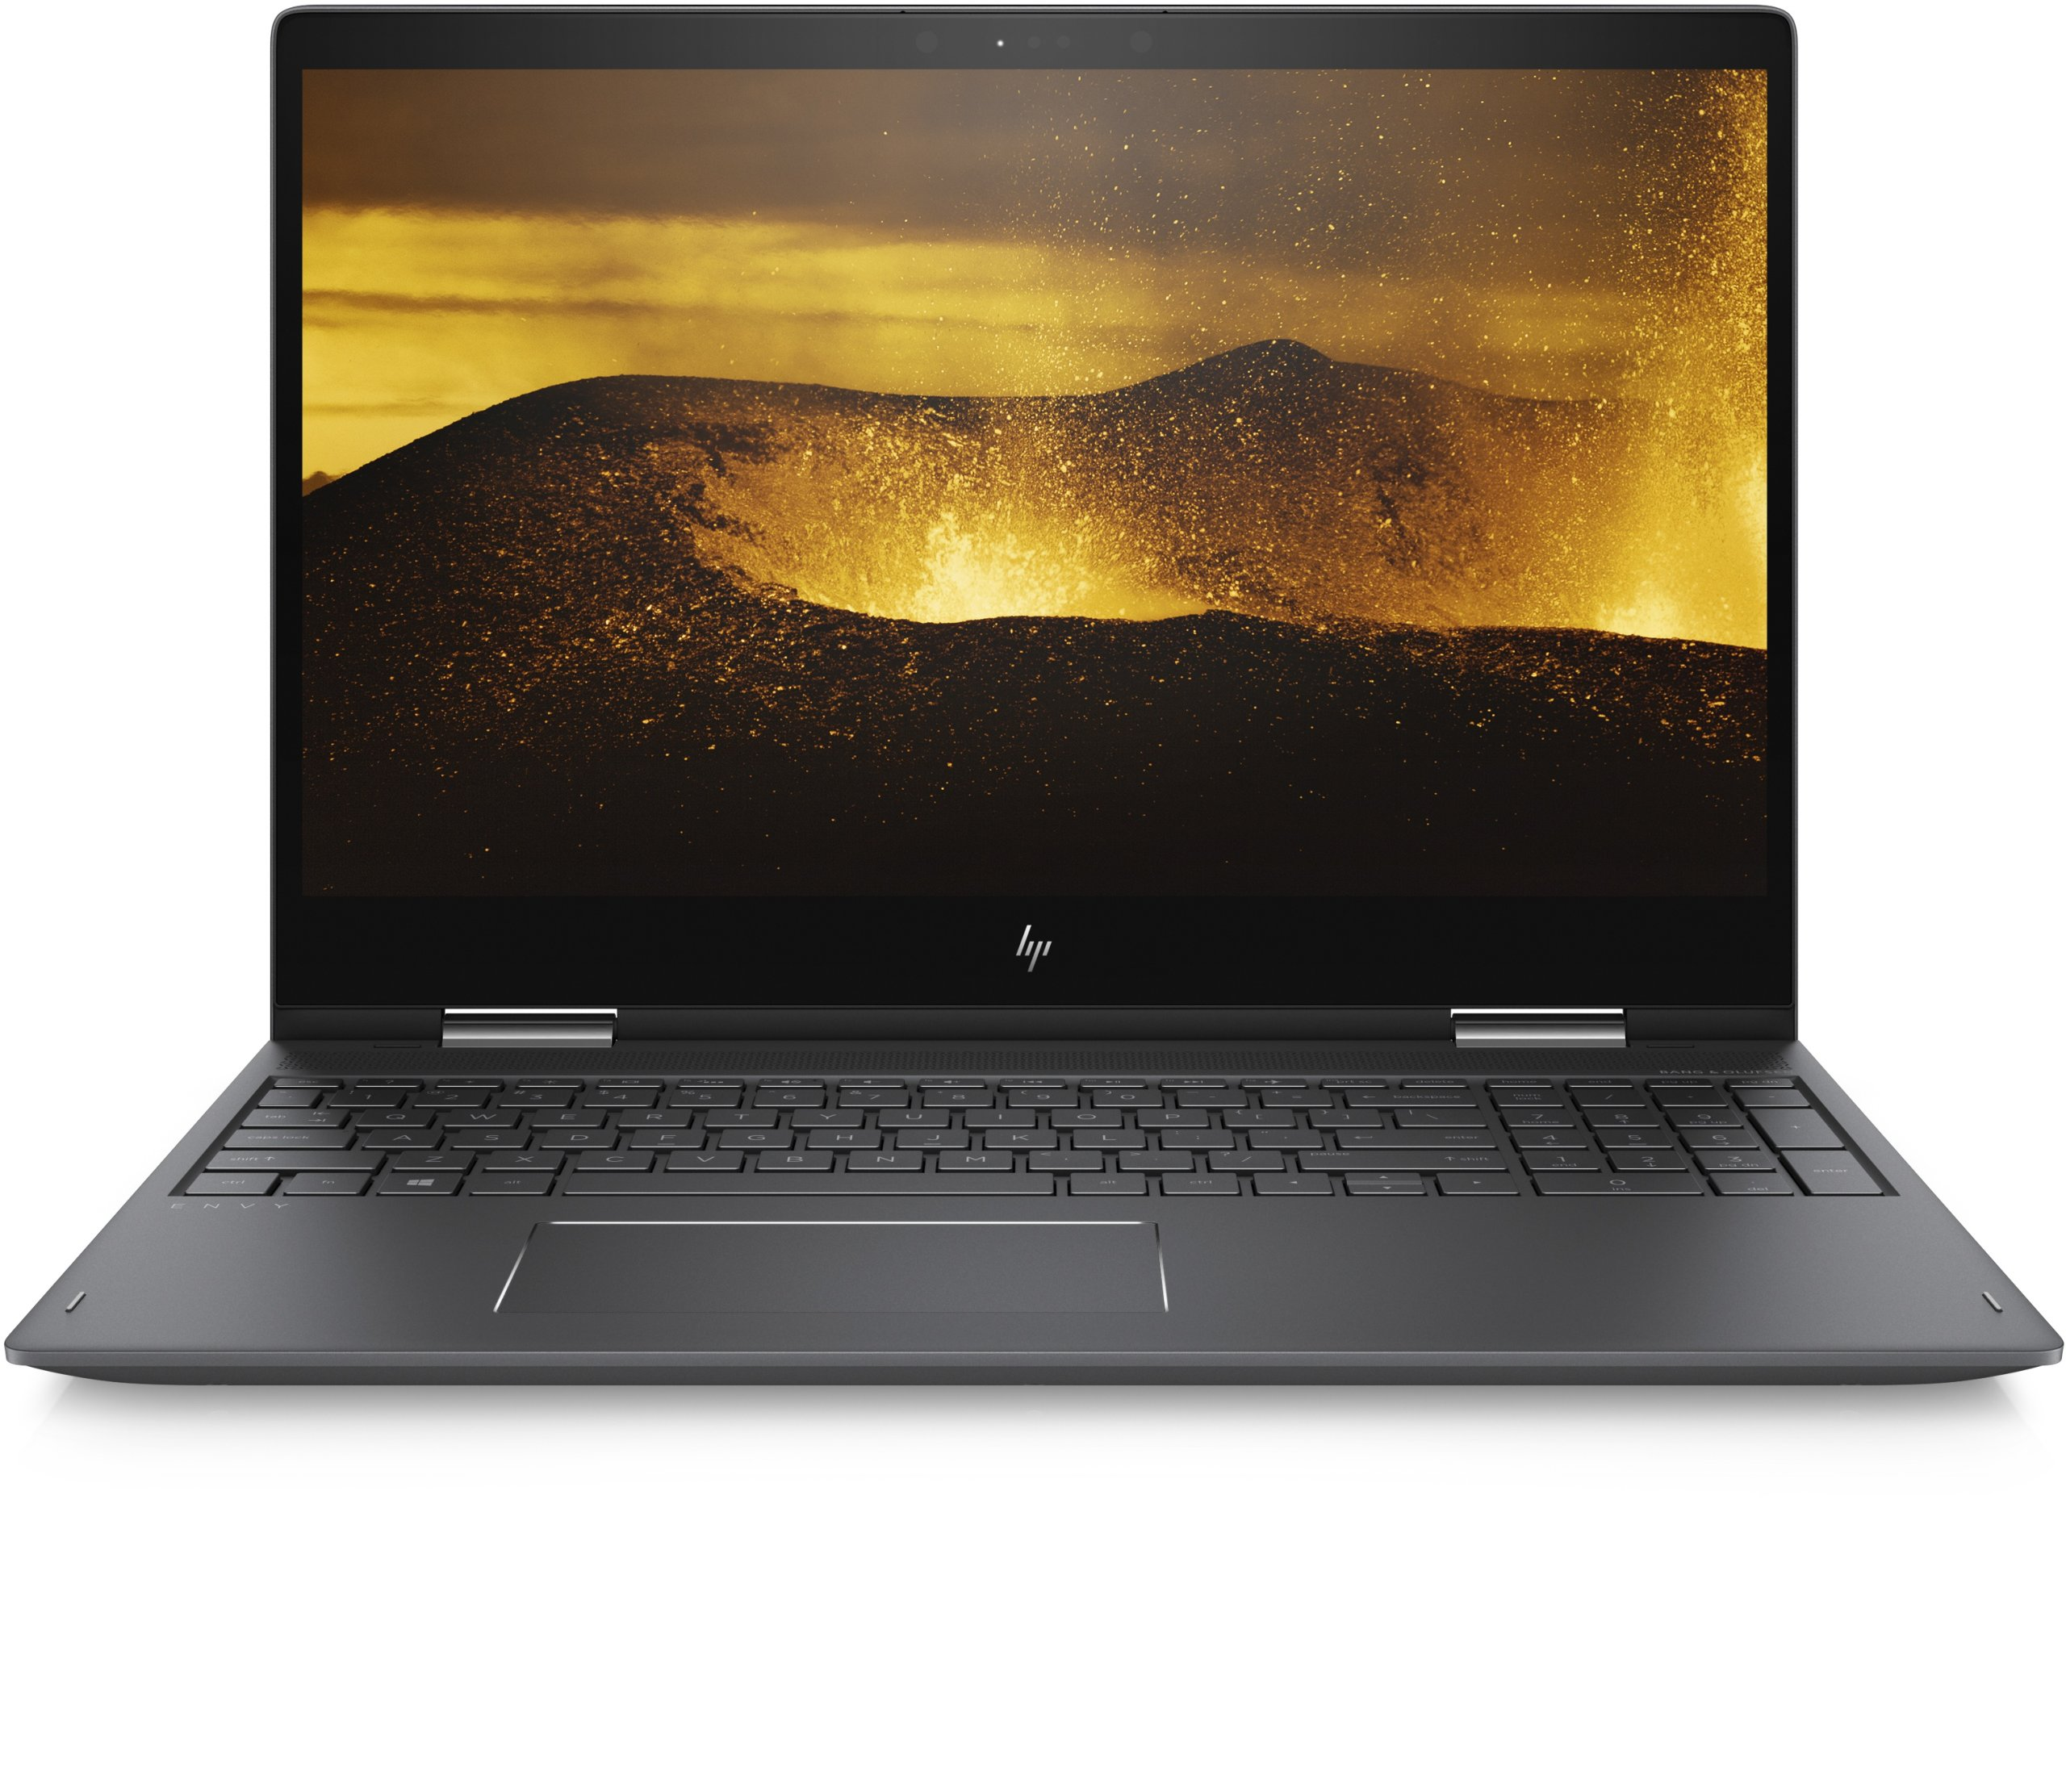 LAPTOP HP HP ENVY x360 A12 9720P 256SSD FHD IPS